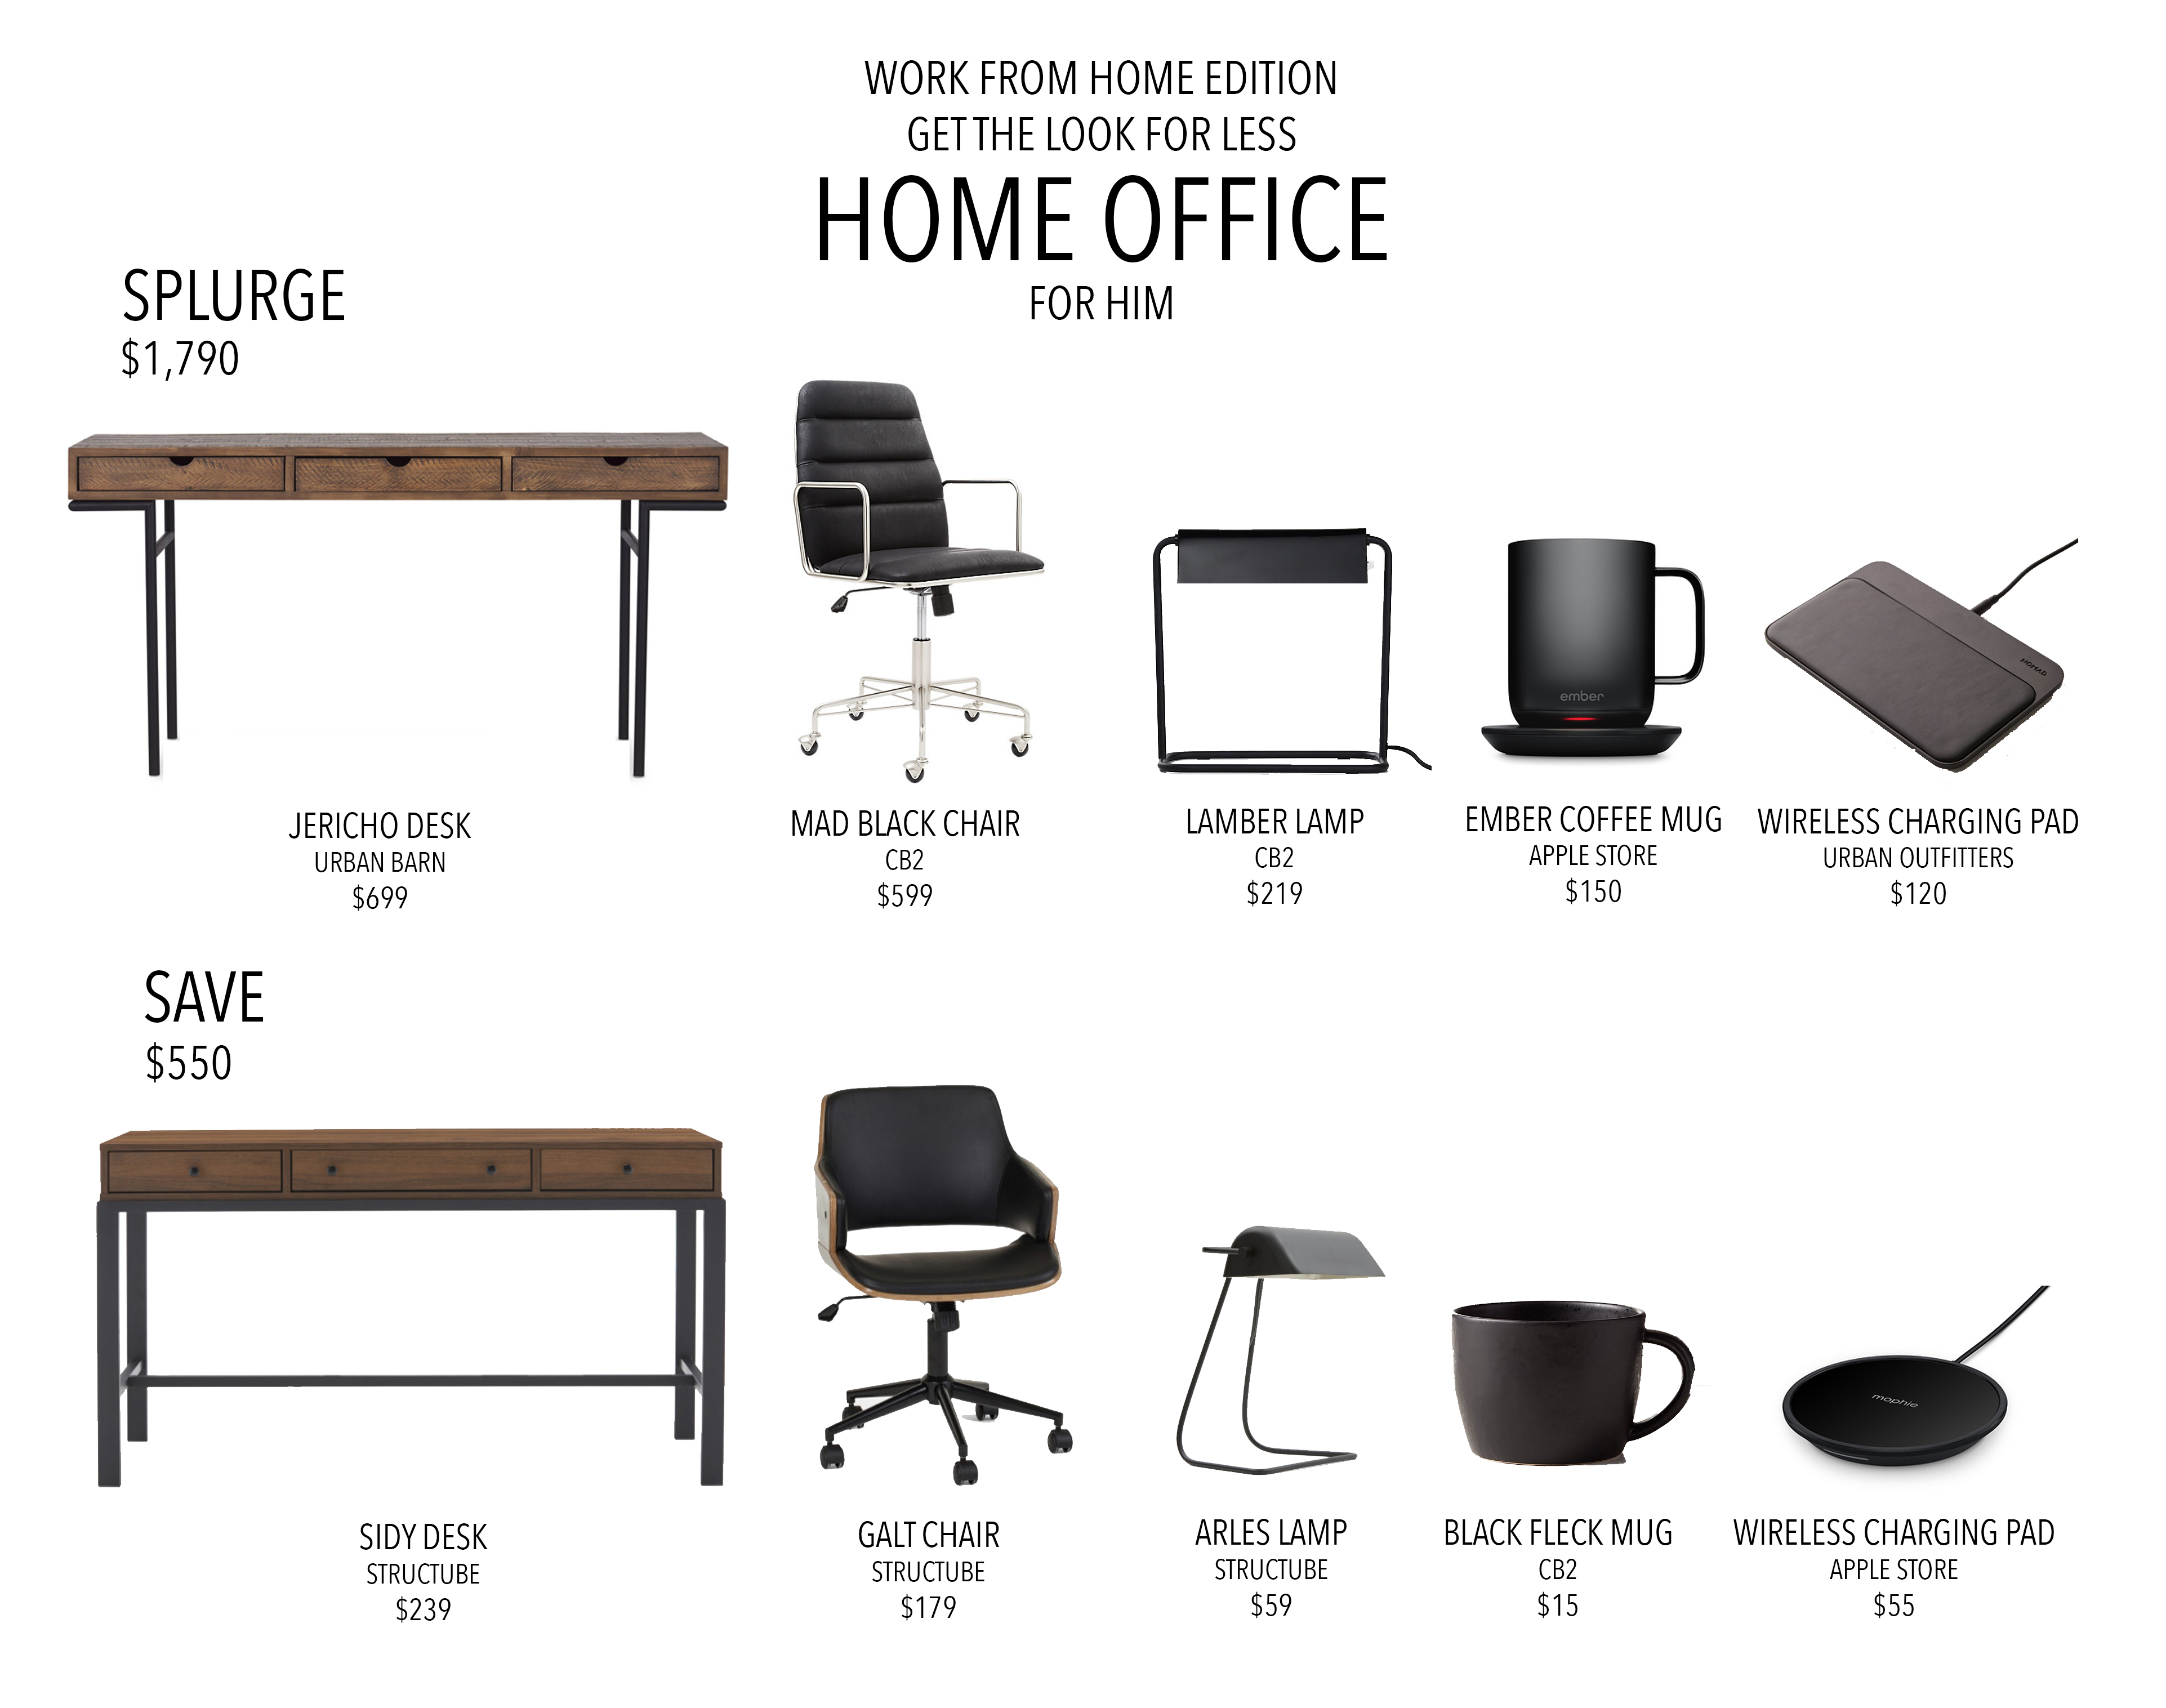 WFH Work from Home 2020 Home Office for Him Masculine Office Save and Splurge